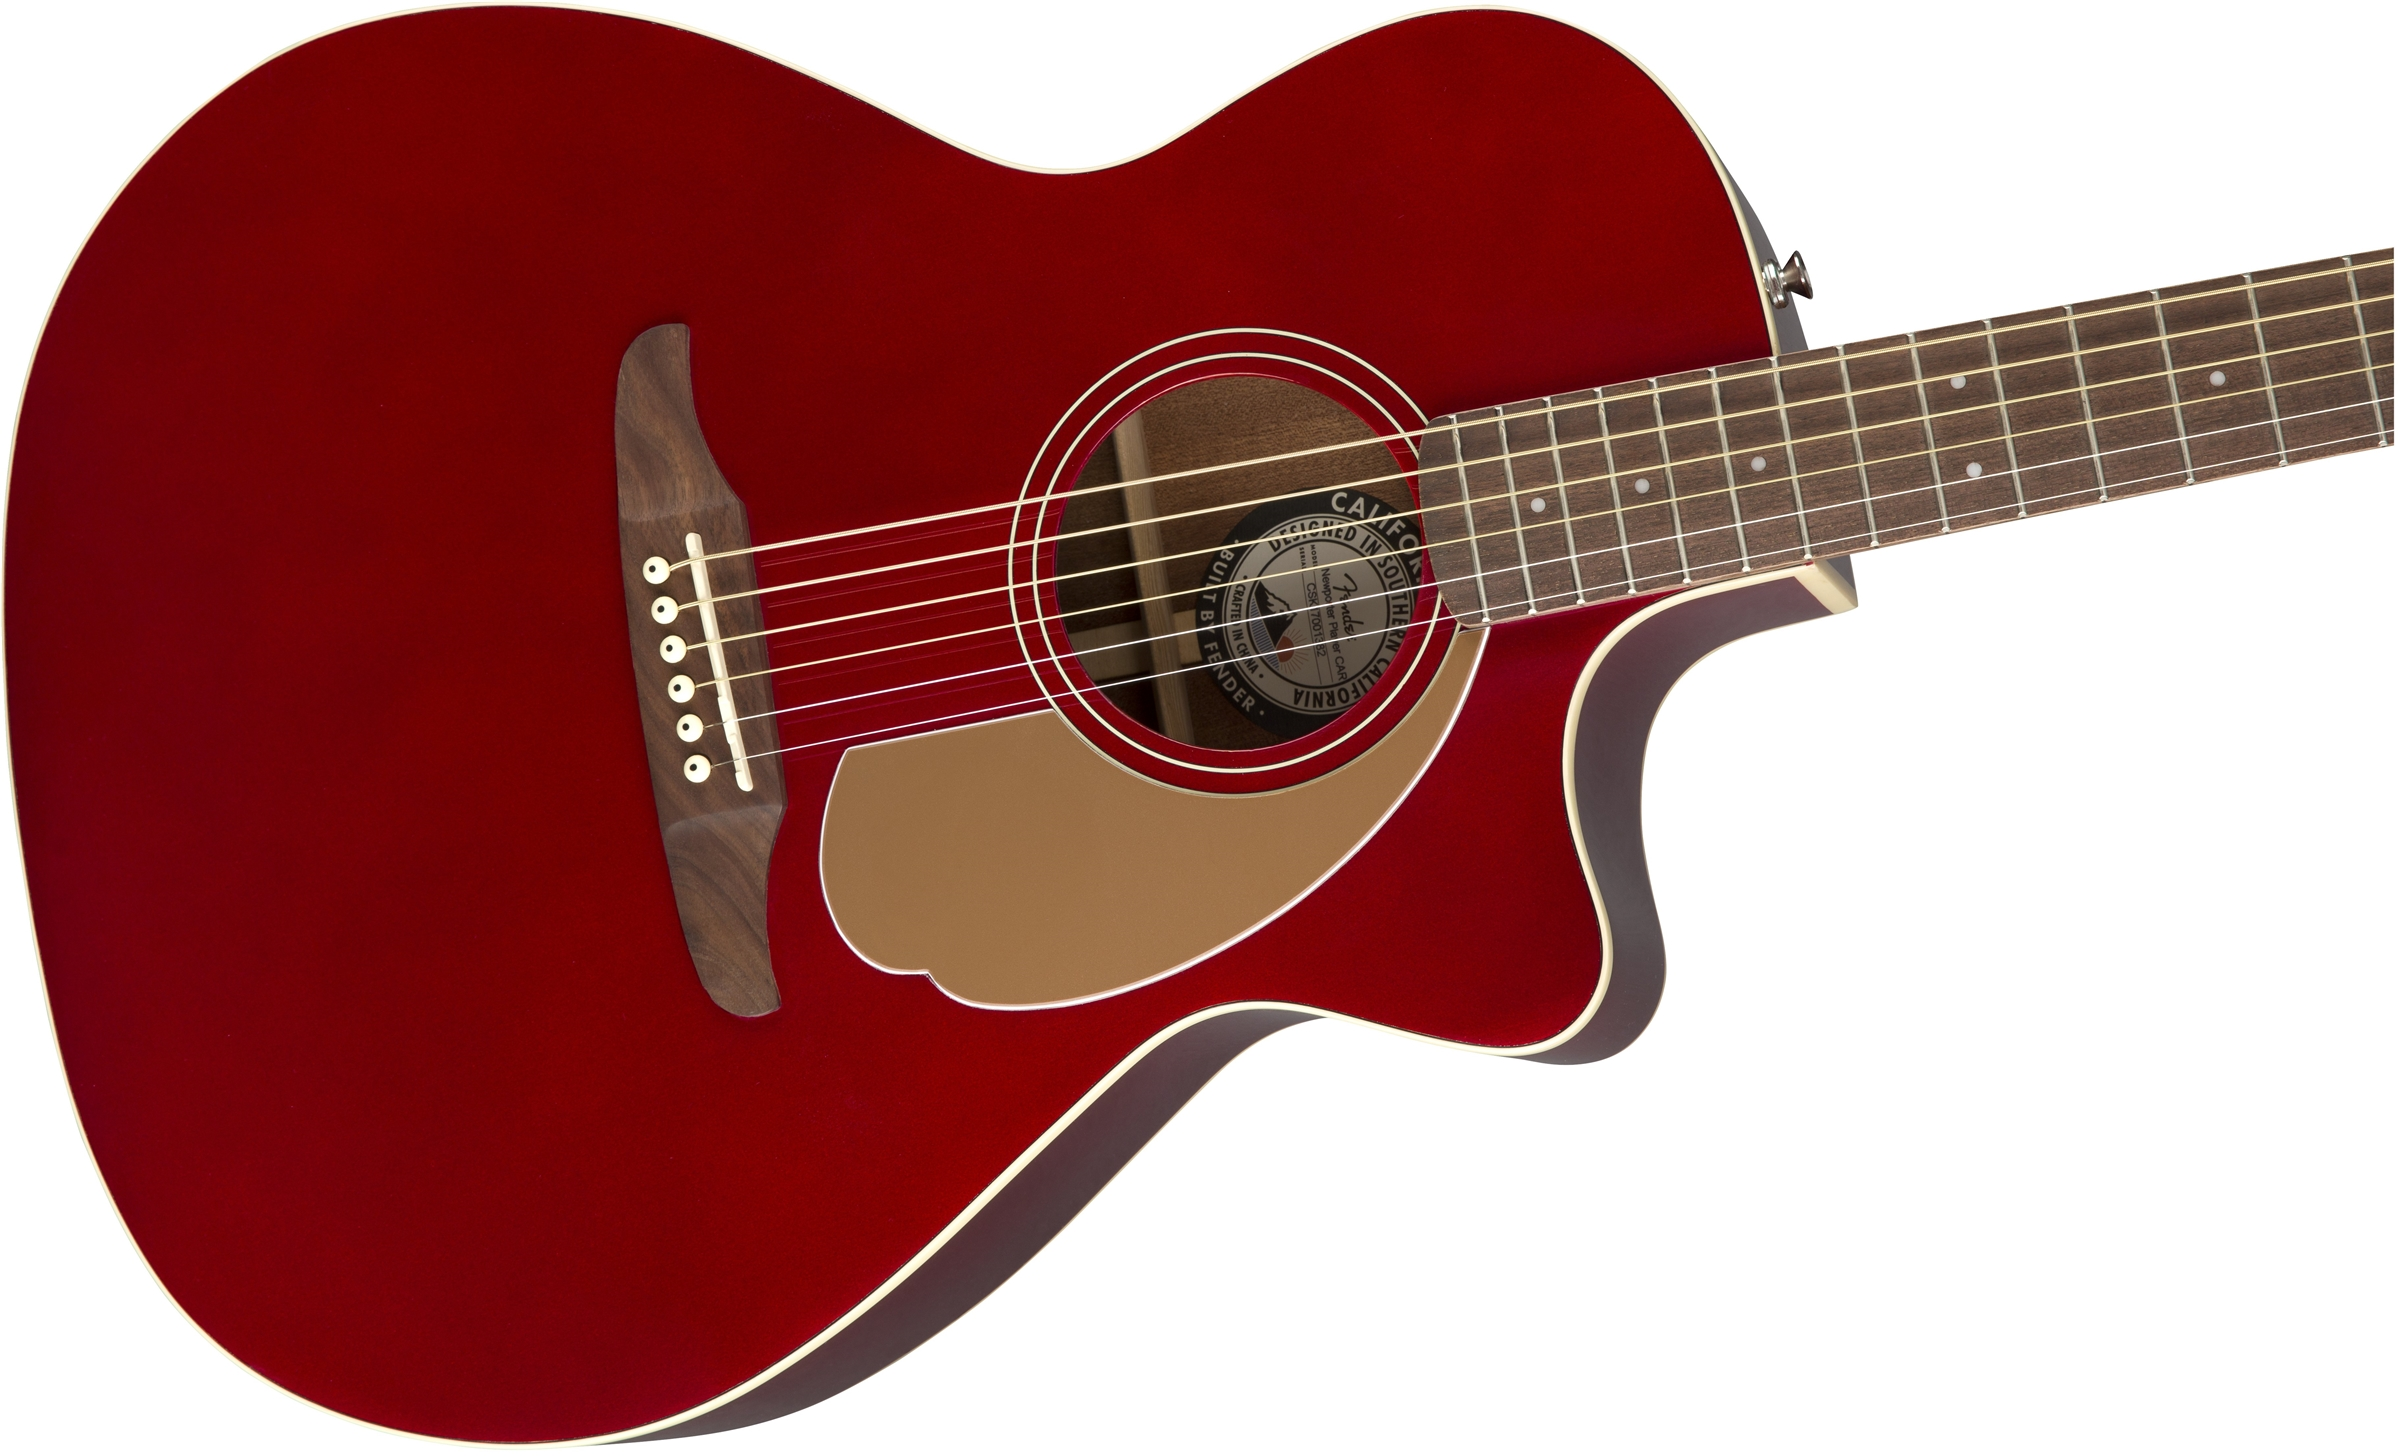 Red Metallic 2019 Latest Style Online Sale 50% Acoustic Electric Guitars Fender Redondo Classic Solid Spruce/mahogany Guitar W/ Gigbag